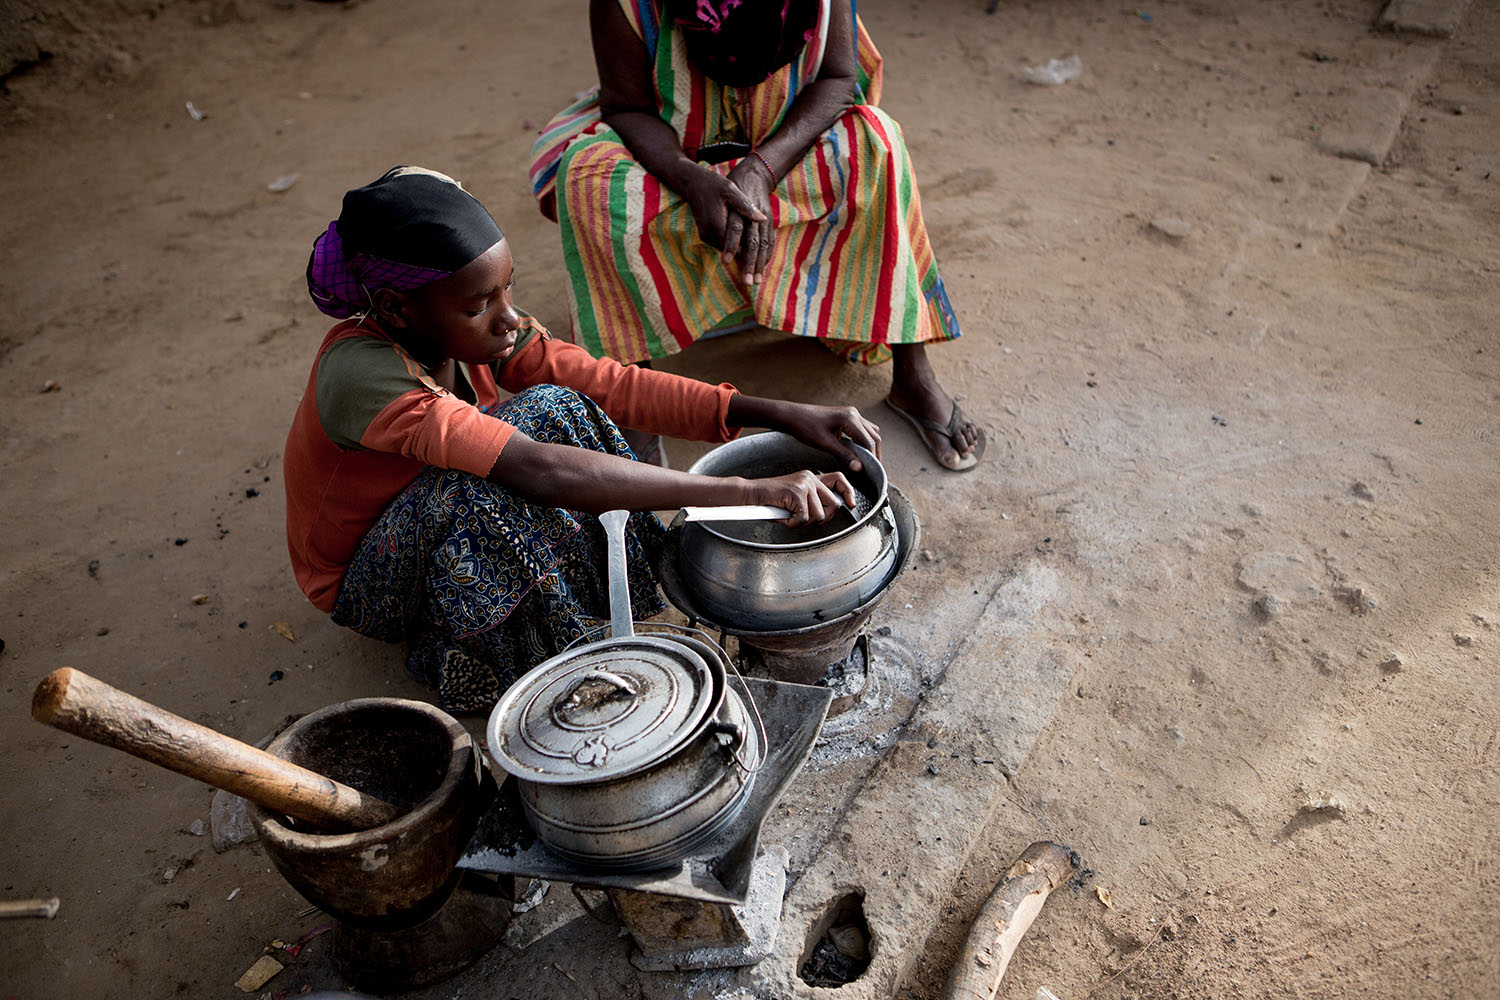 Adeoula, 12 years, (RELEASED) cleans the pots and helps her grandmother do chores at their homestead in the city of Gao, northern Mali. Adeoula and her brother were orphaned during the conflict and live with their grandmother Hadish. Ongoing conflicts in